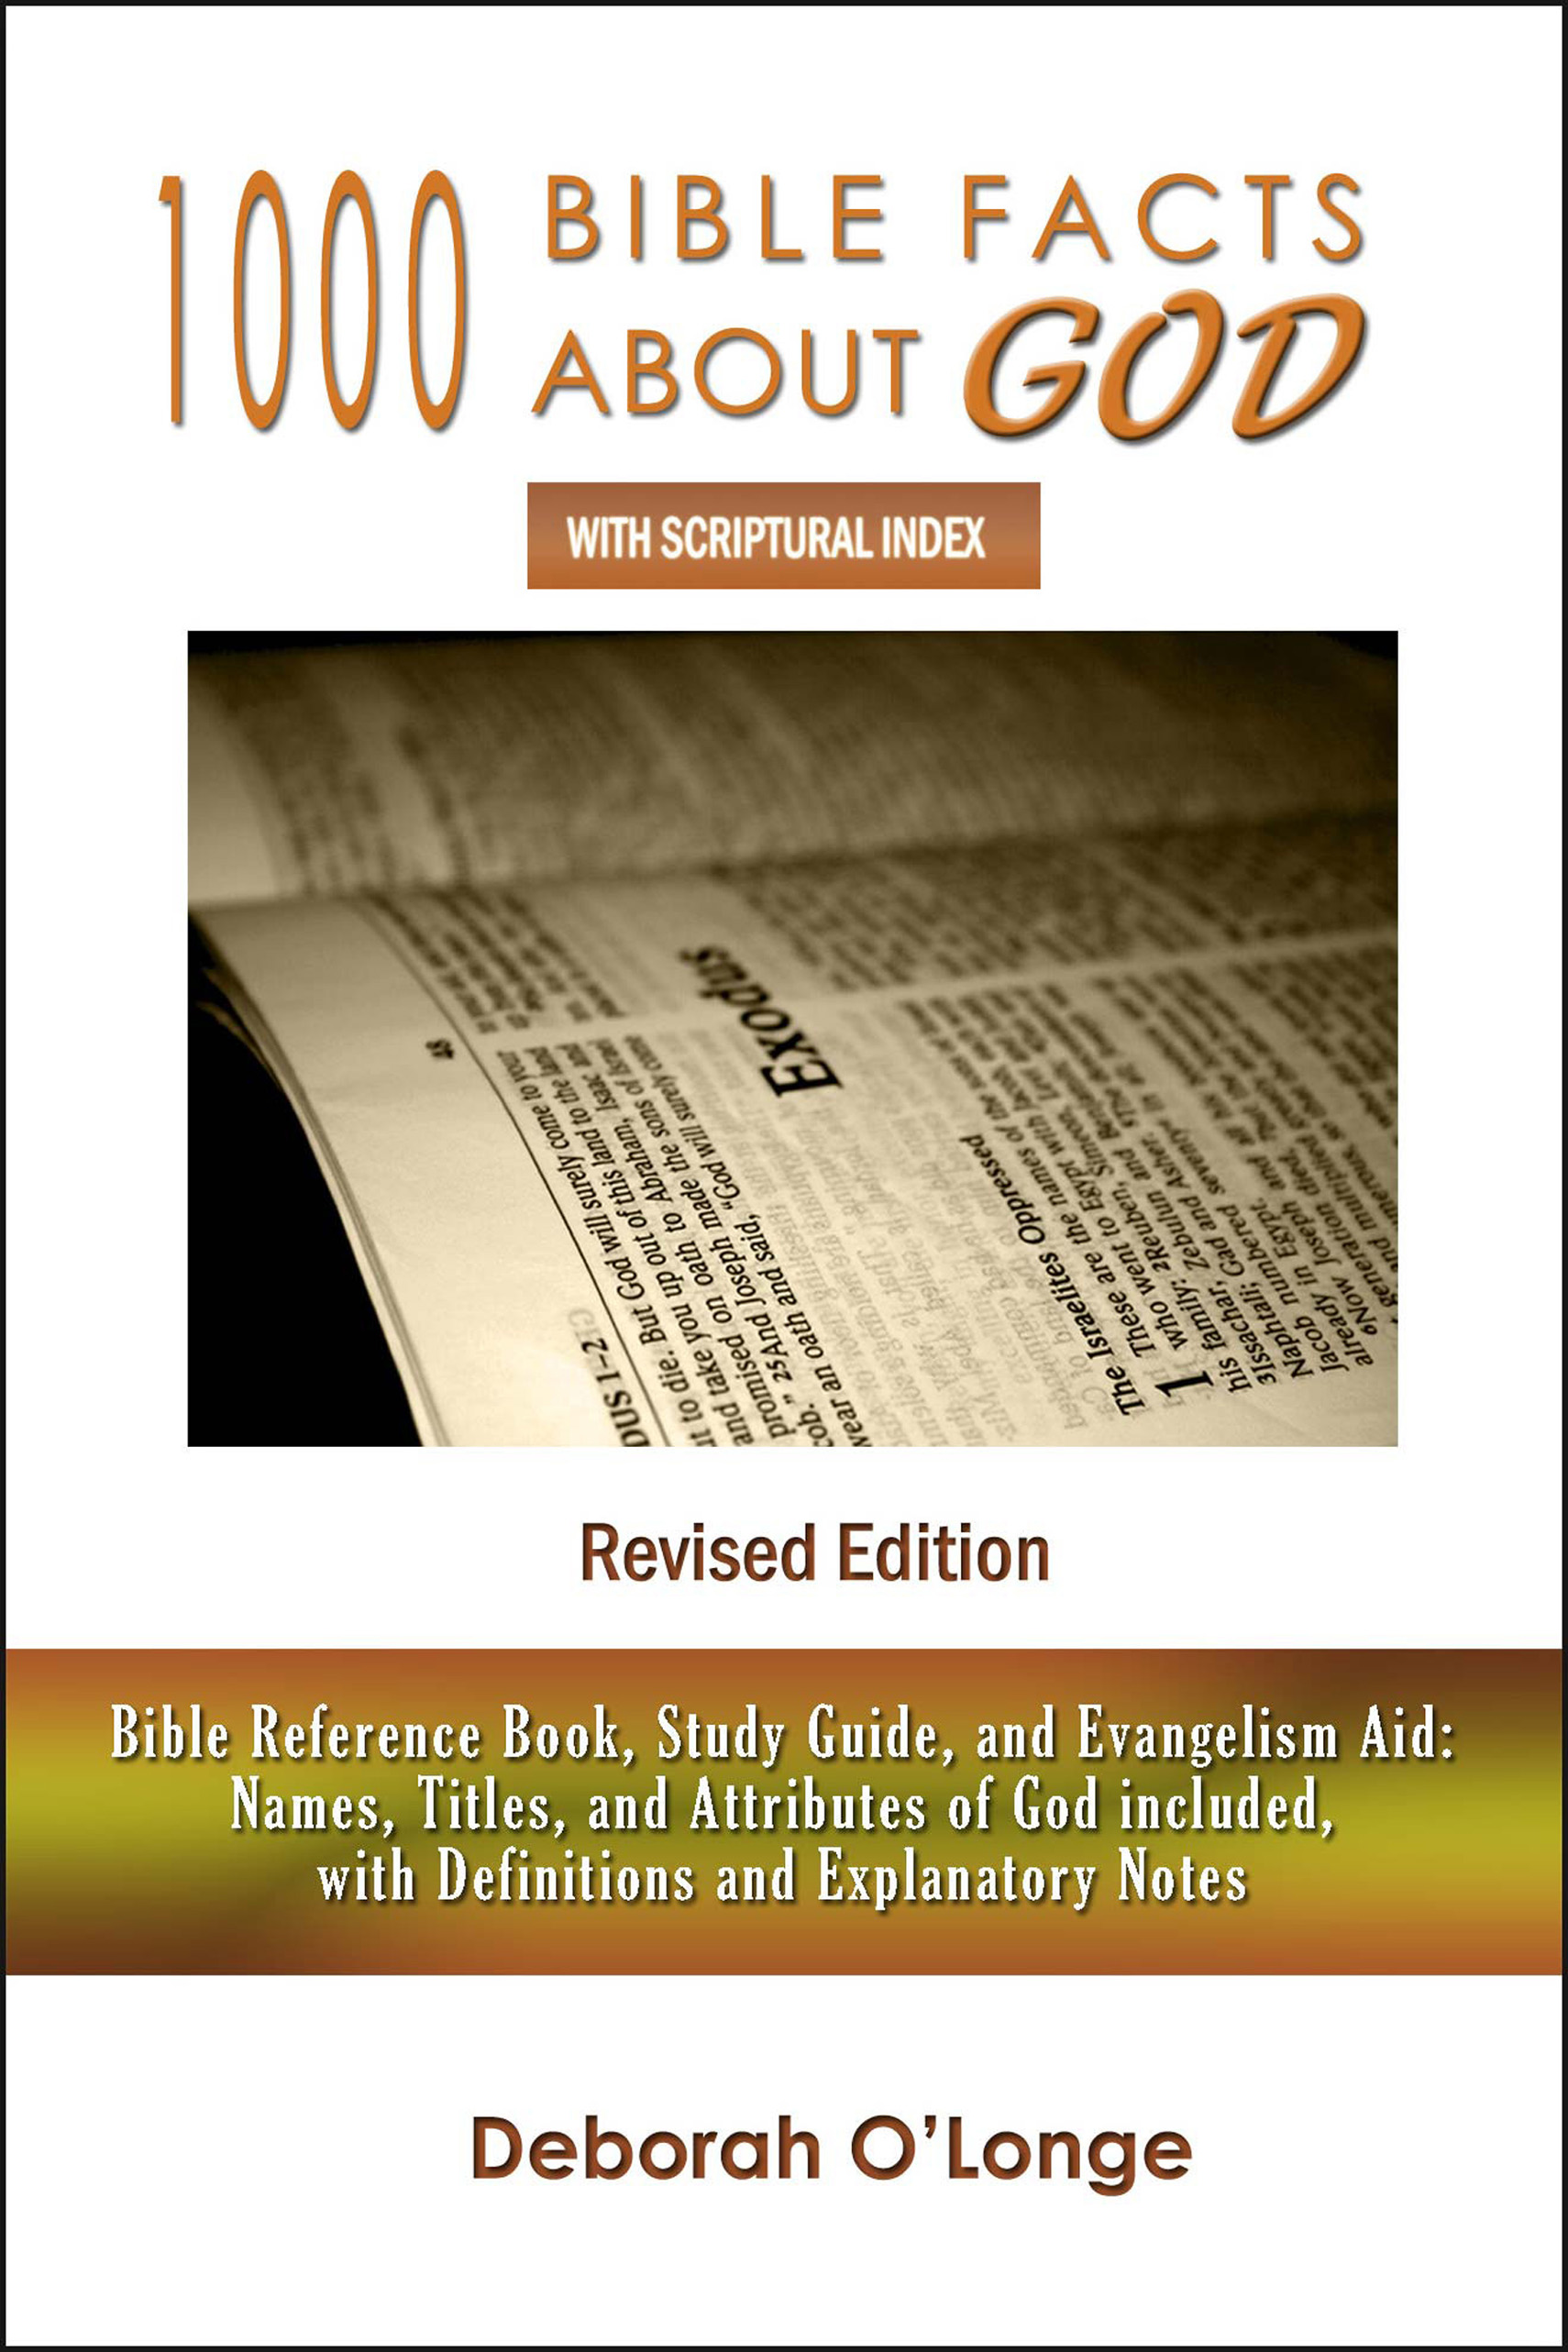 1000 Bible Facts About God (Revised Edition): With Scriptural Index - [Bible Reference Book, Study Guide, and Evangelism Aid: Names, Titles, and Attributes of God included with Explanatory Notes]